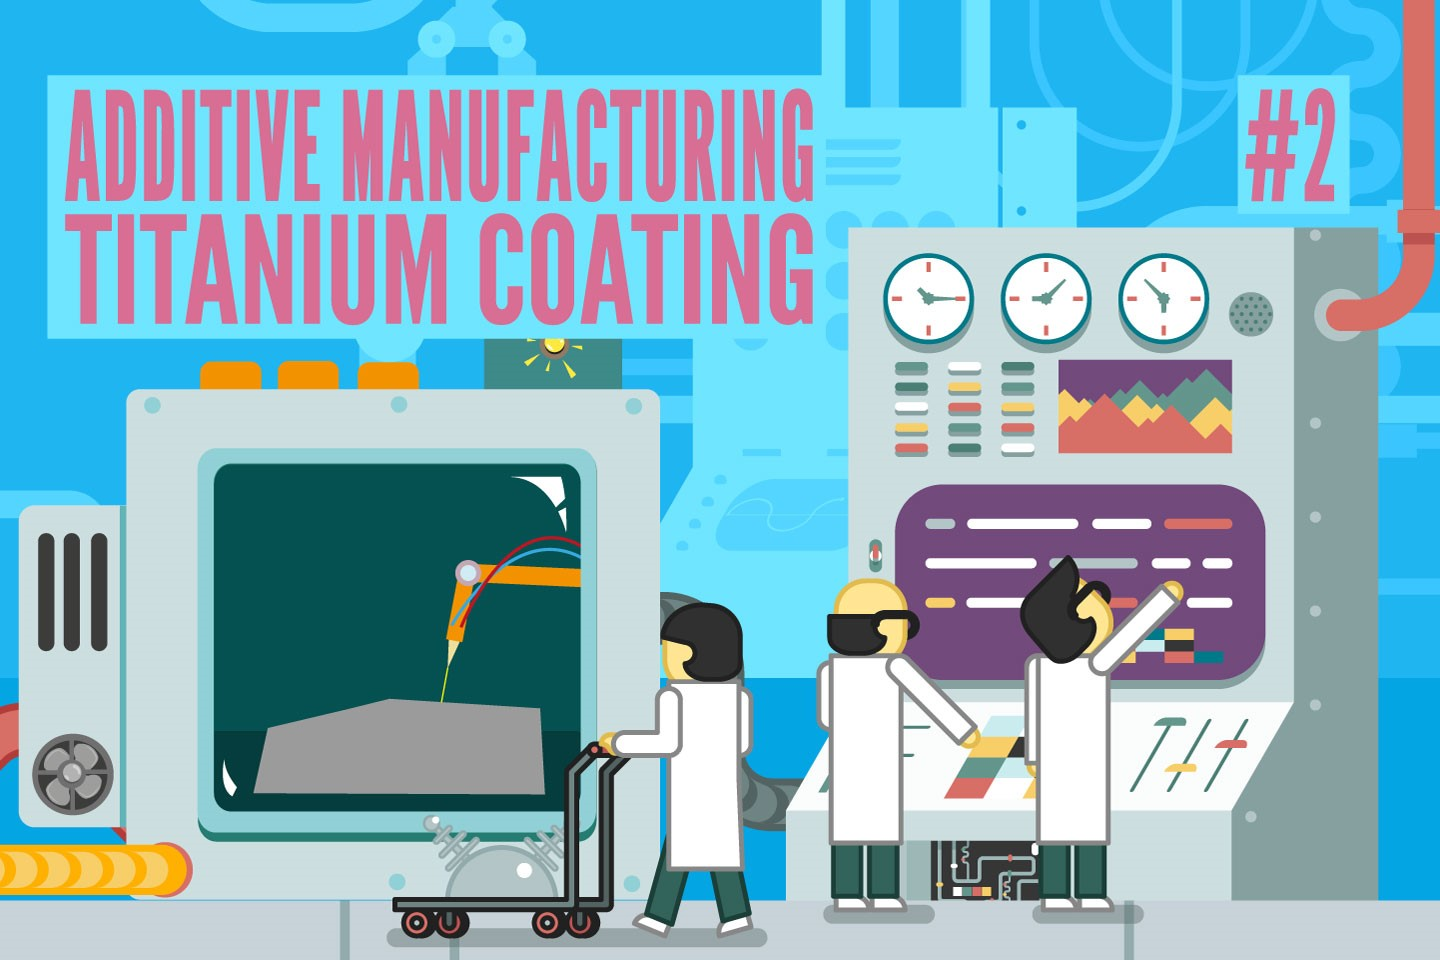 Learn all about coating Titanium64 realized via additive manufacturing #2